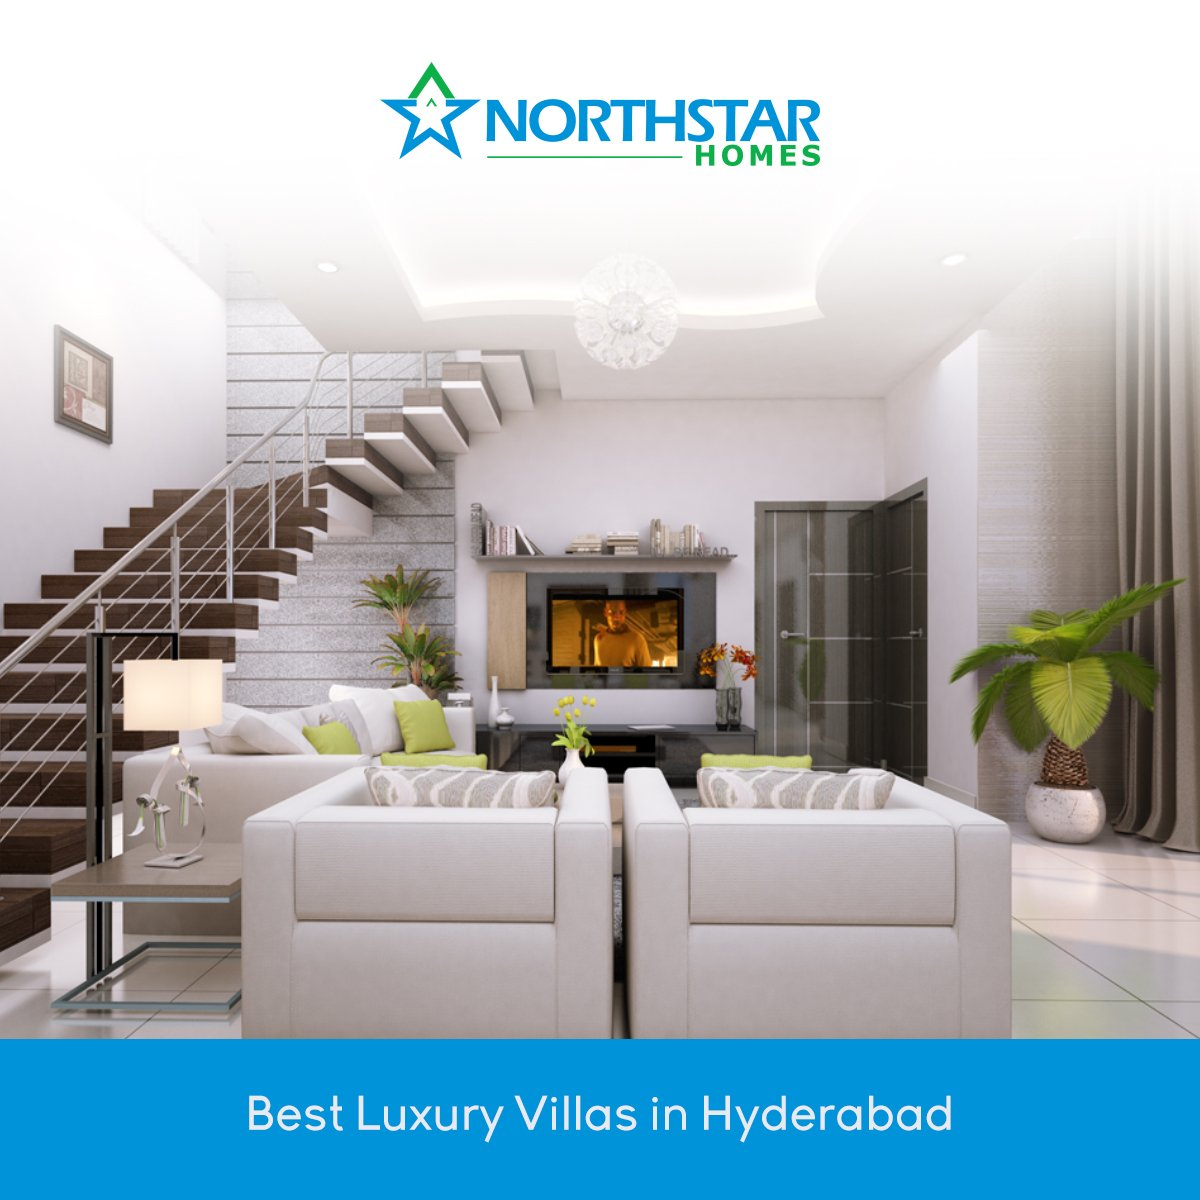 North star Homes on Twitter: